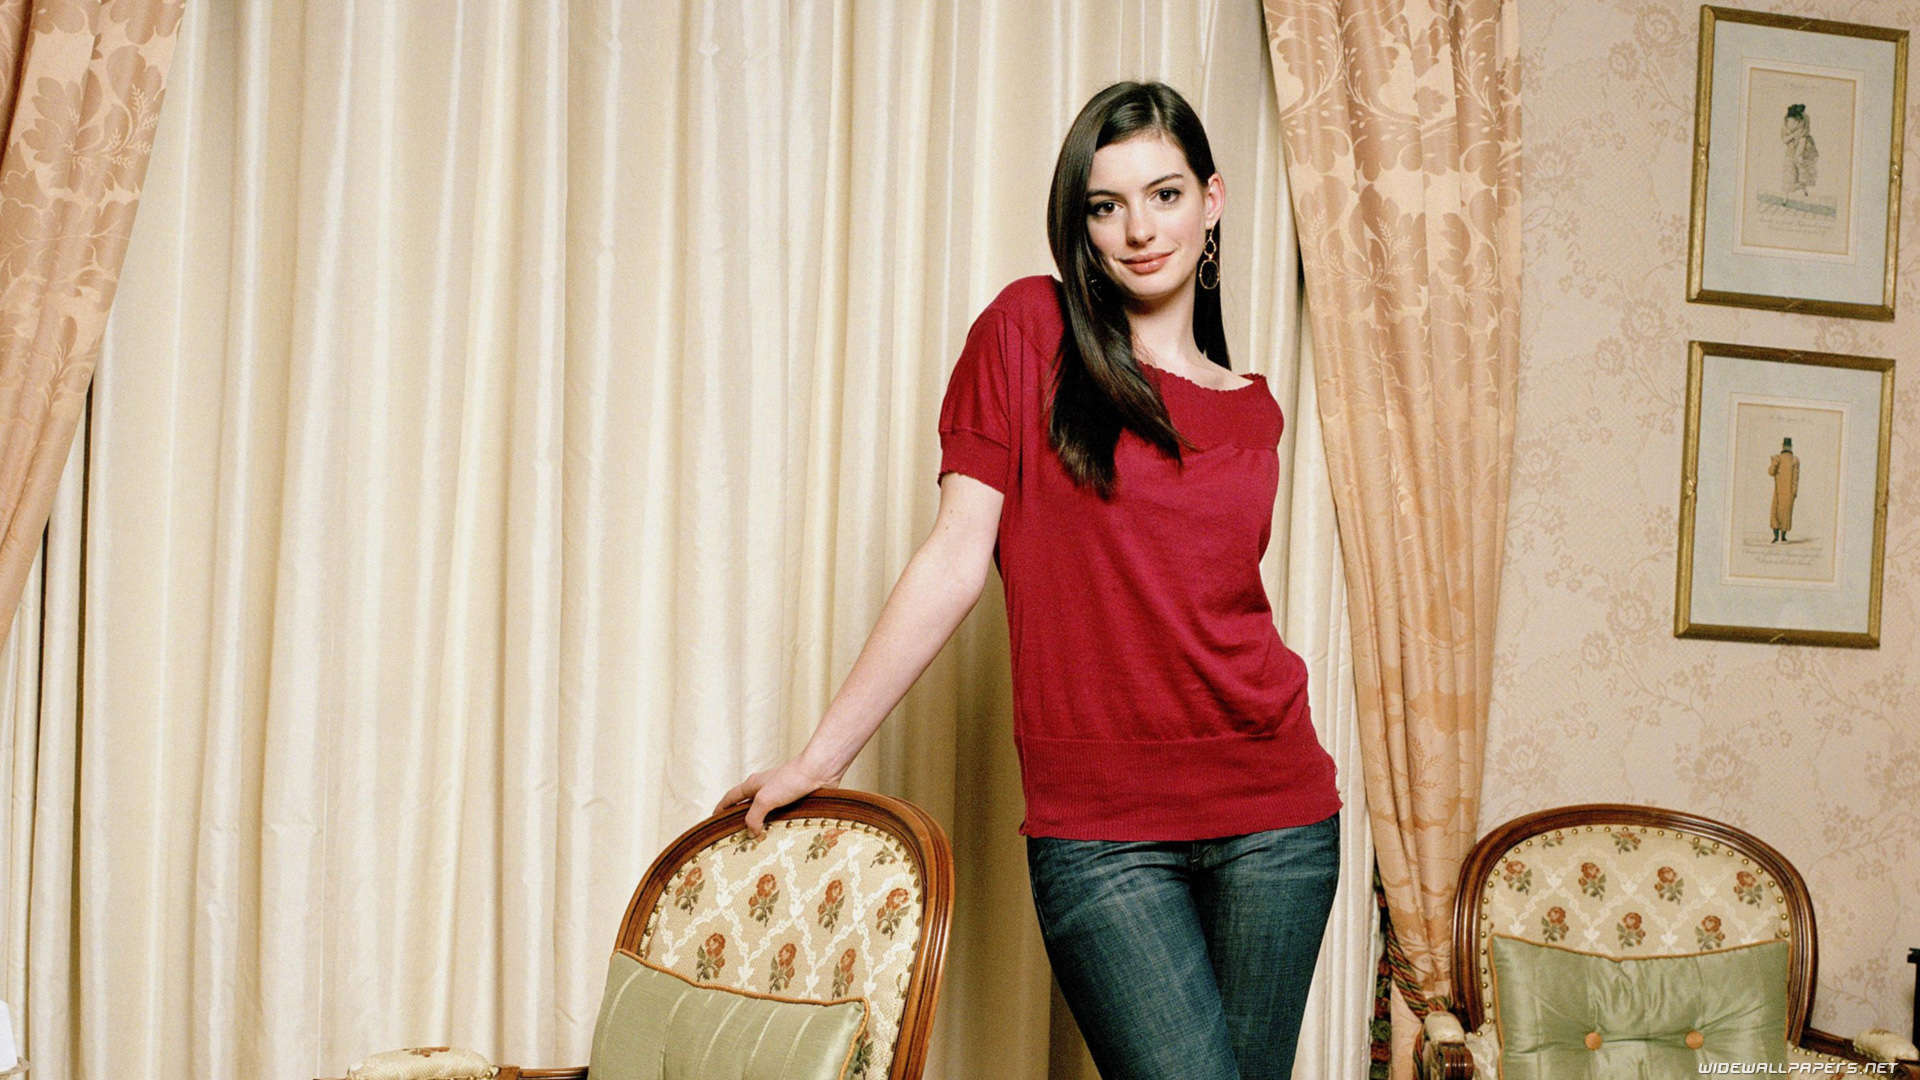 anne hathaway 2015 wallpapers - photo #19